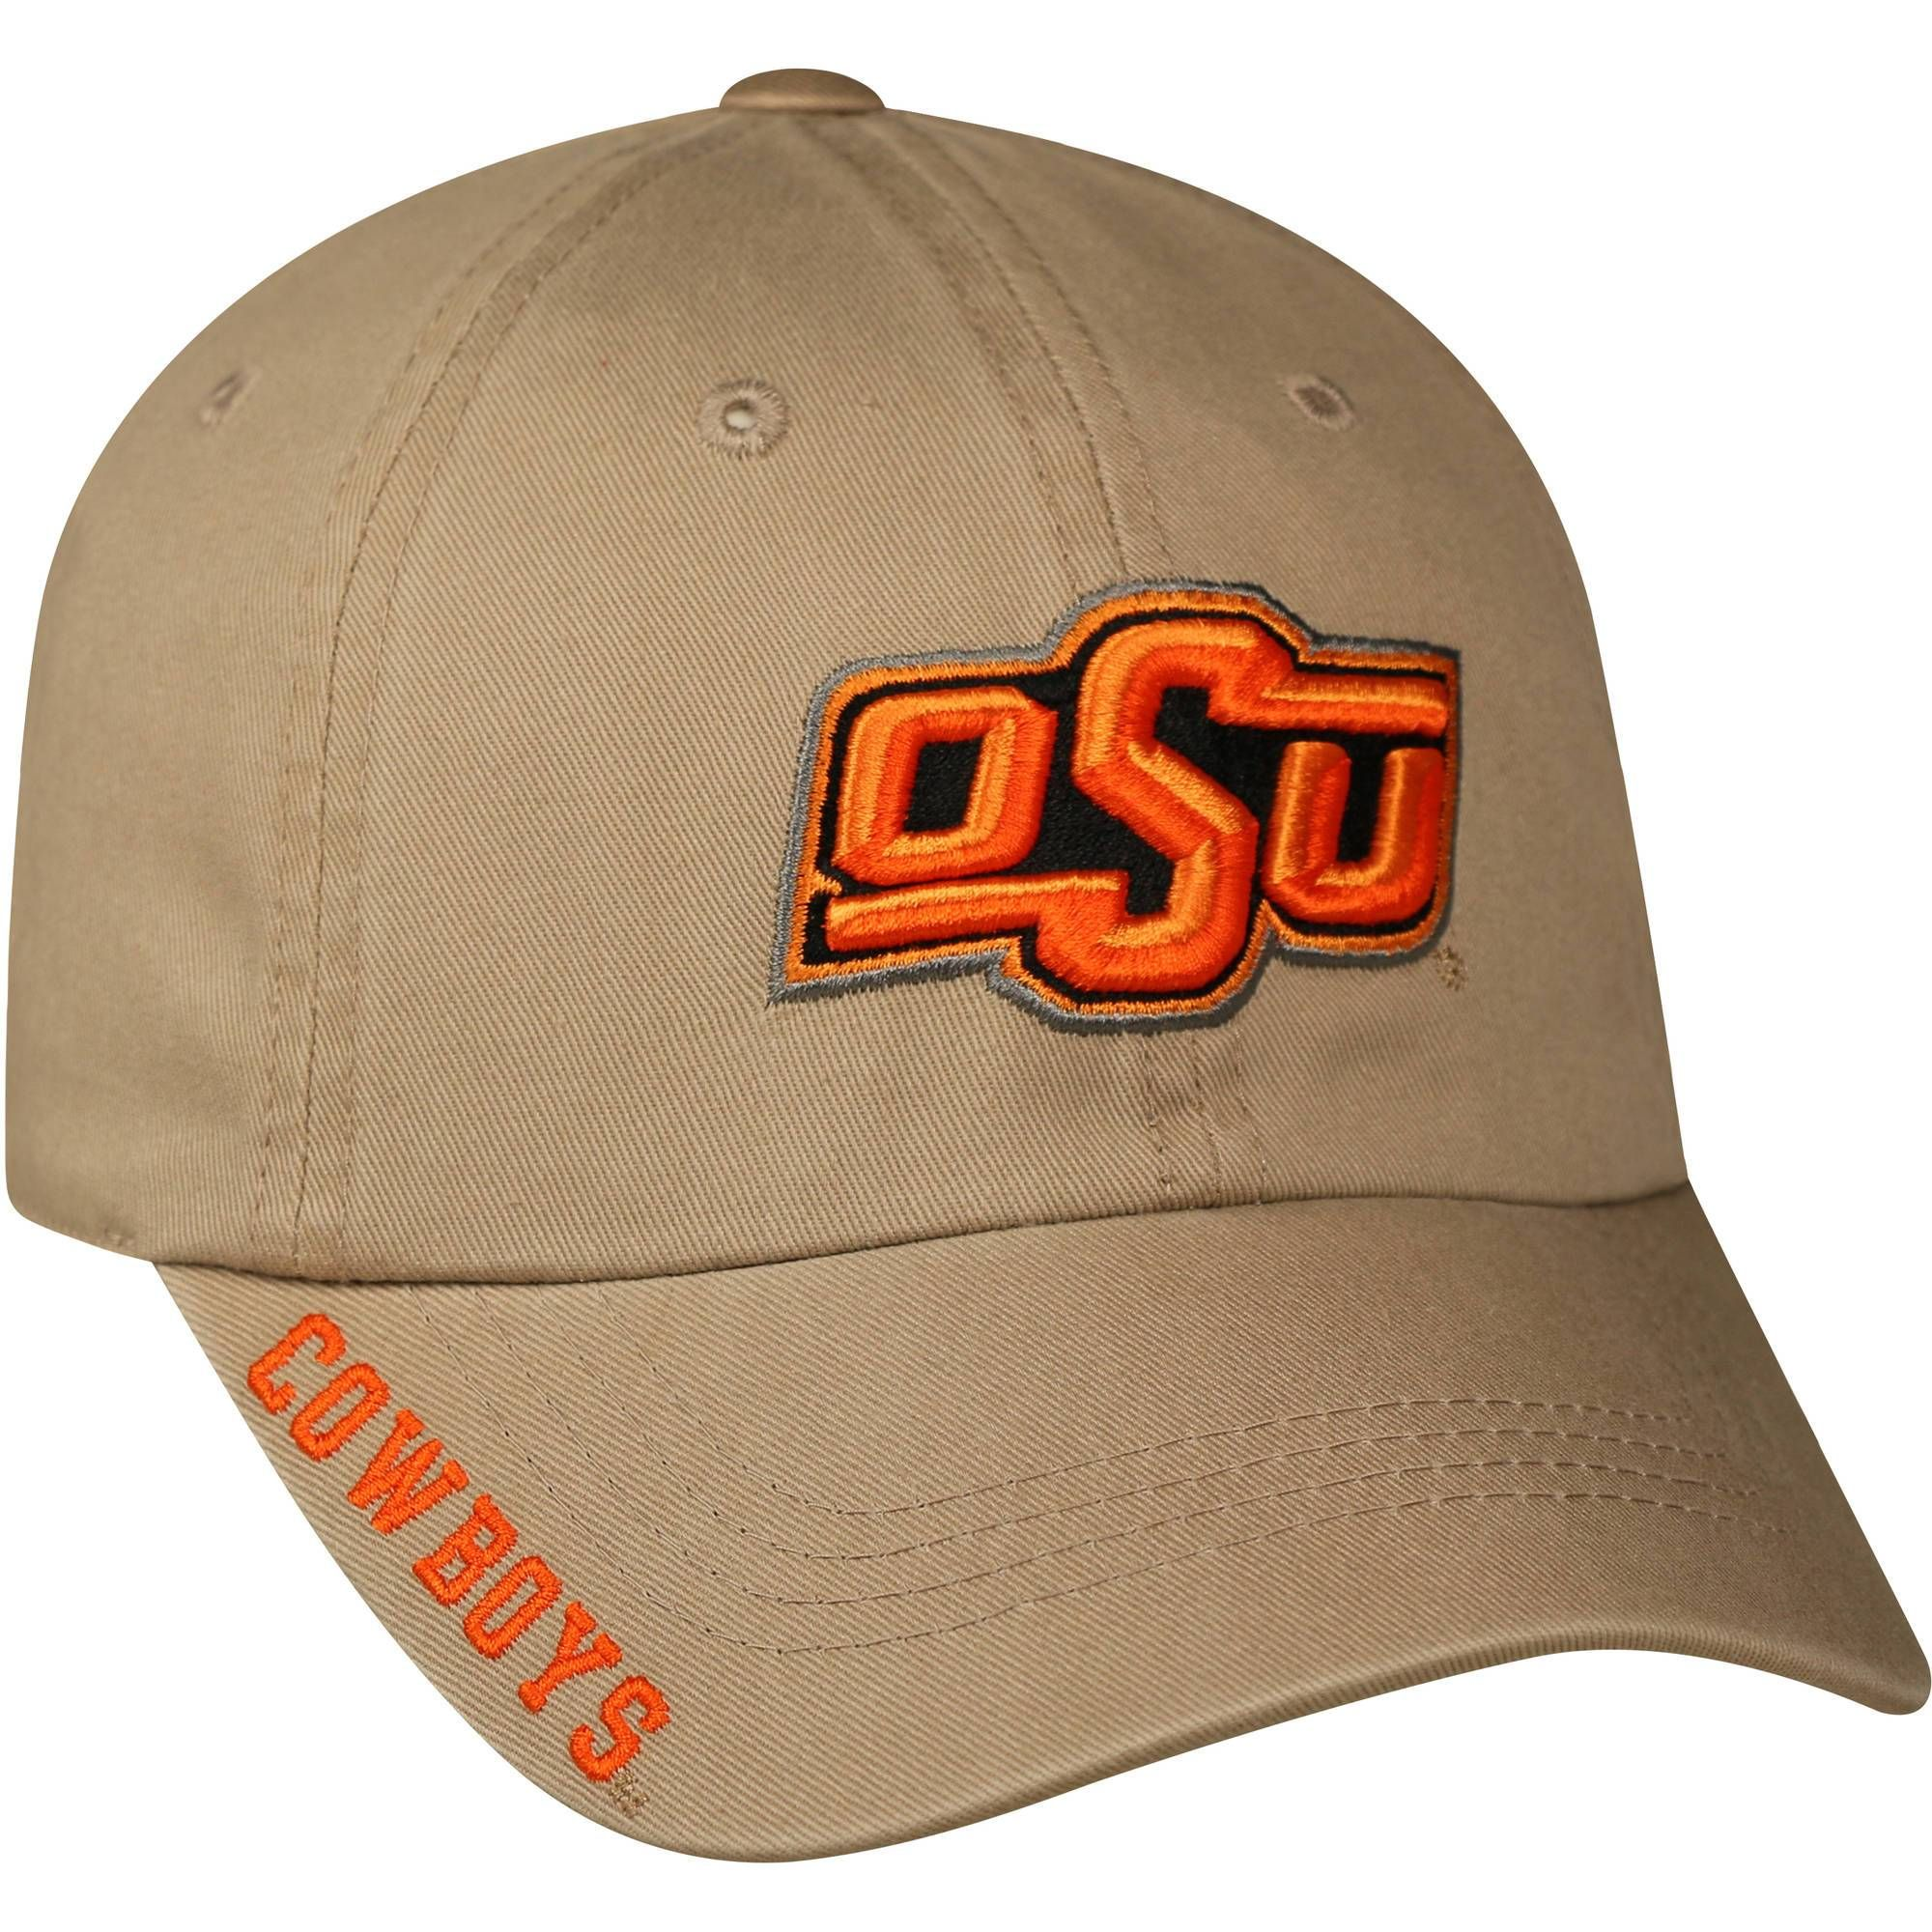 quality design 54a74 9f913 ... new arrivals oklahoma state cowboys ncaa mens adjustable ball cap hat  khaki 681c1 21ca8